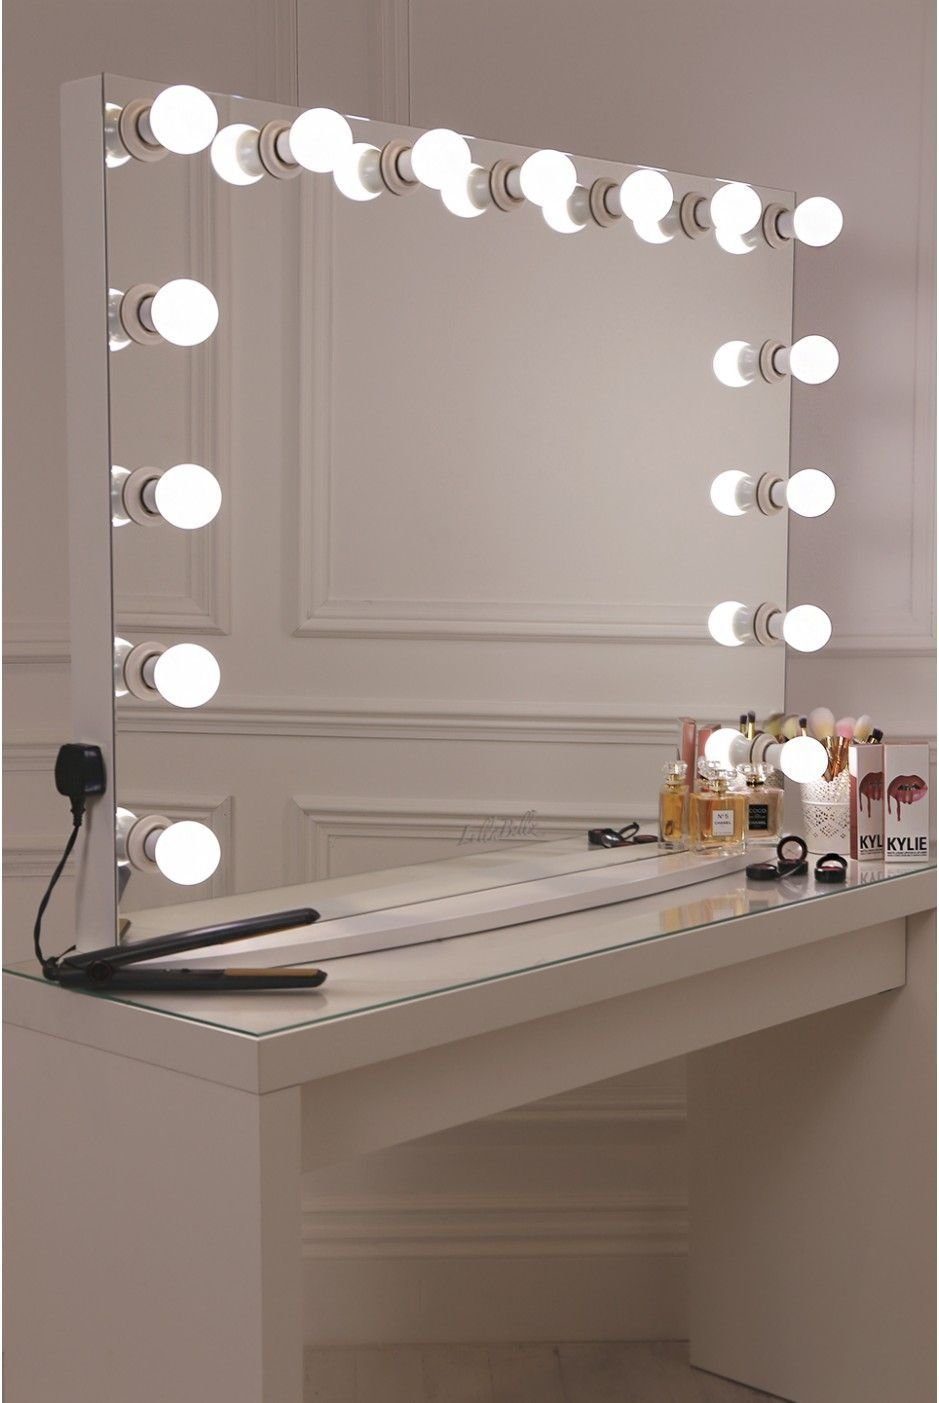 Best 17 Diy Vanity Mirror Ideas To Make Your Room More With Pictures